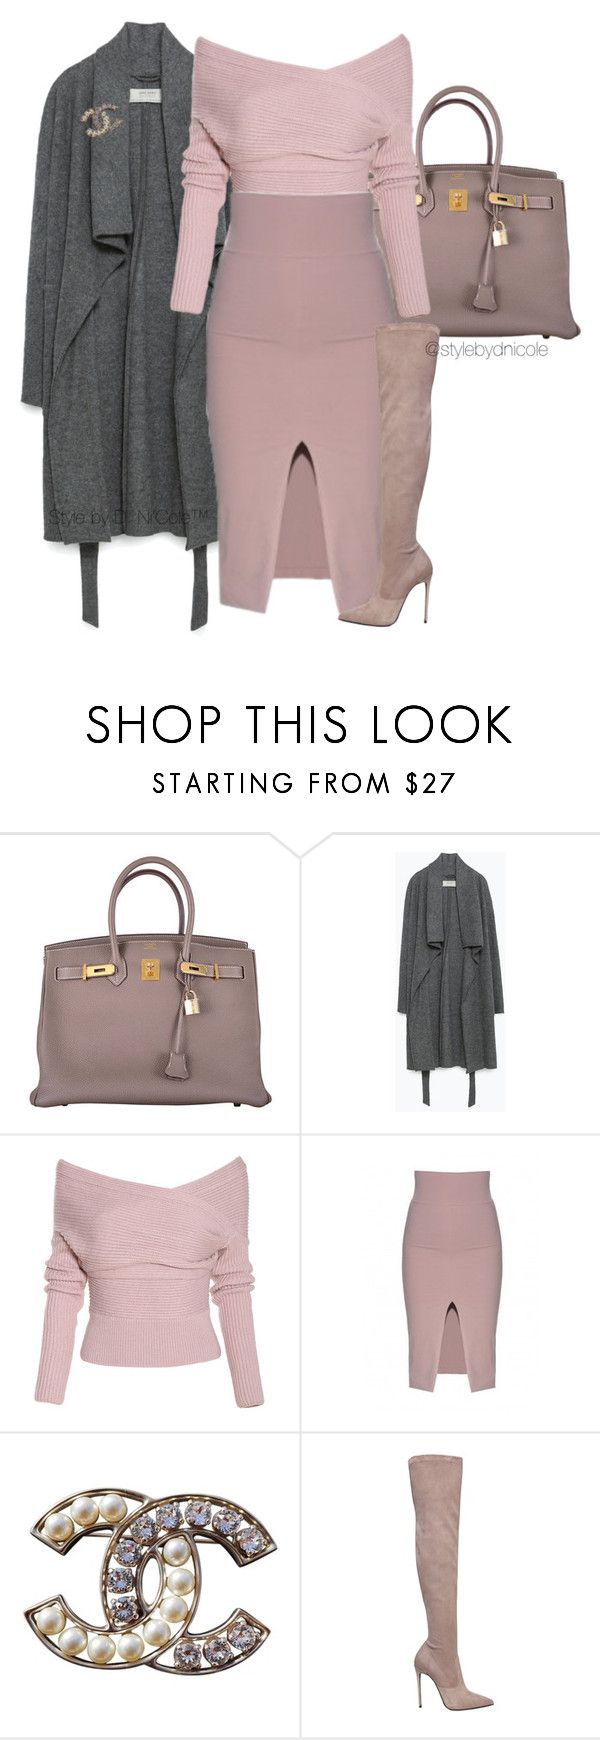 """""""Untitled #3125"""" by stylebydnicole ❤ liked on Polyvore featuring Hermès, Zara, Chanel, Le Silla, women's clothing, women's fashion, women, female, woman and misses"""